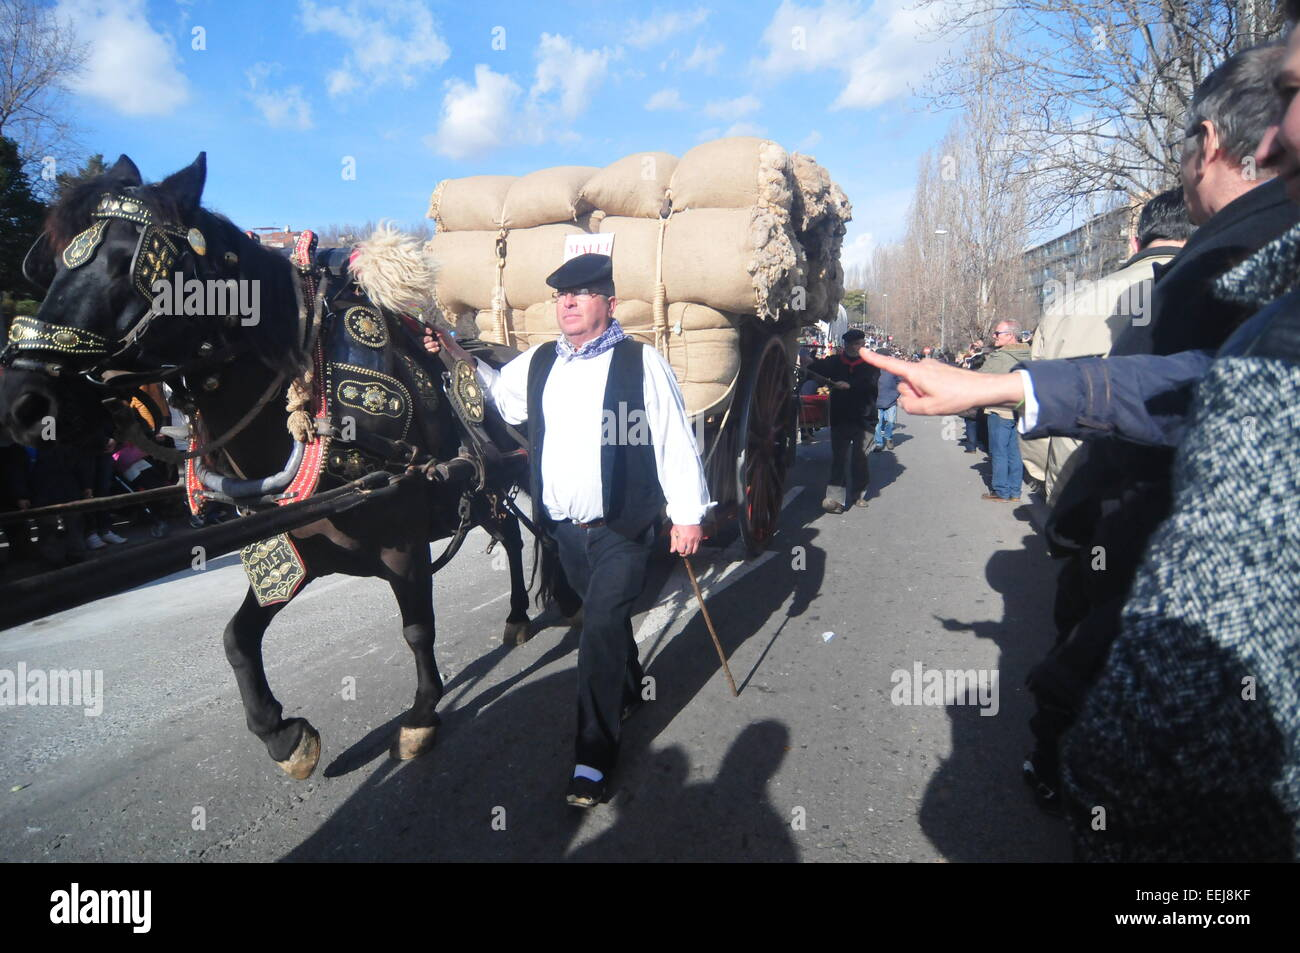 Barcelona, Spain. 18th Jan, 2015. 'Tres Tombs' Parade (Sant Cugat, Barcelona, Spain, January 18th, 2015)A - Stock Image